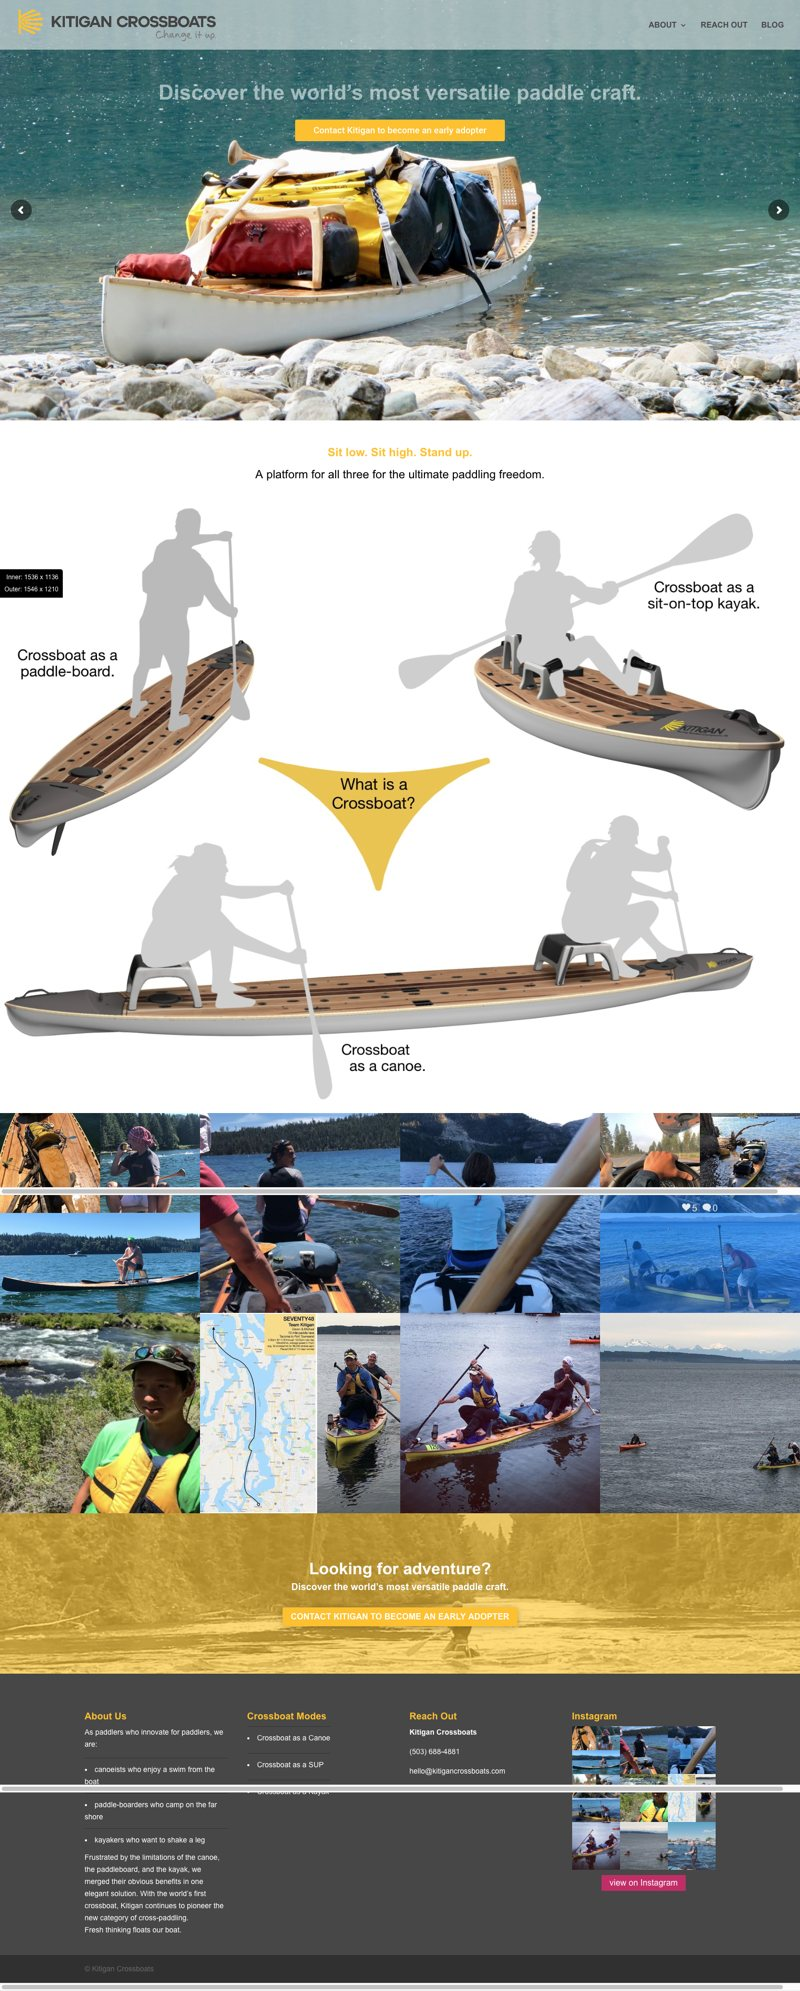 Kitigan Crossboats Website Home Page